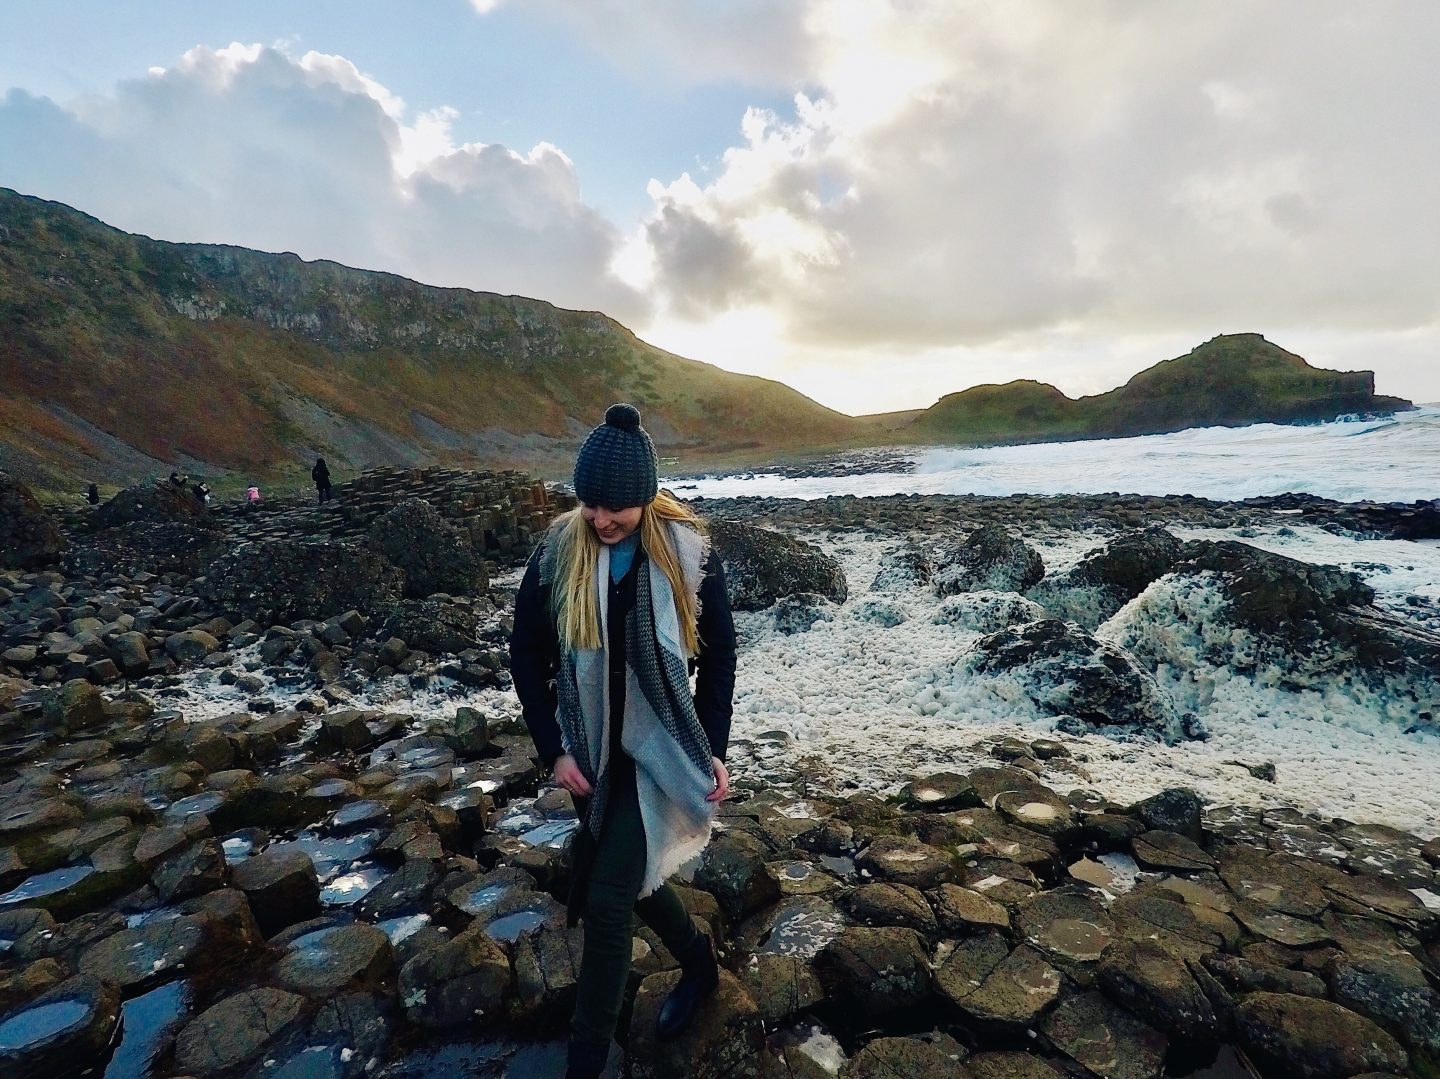 Exploring the rocks of Giant's Causeway in Northern Ireland!